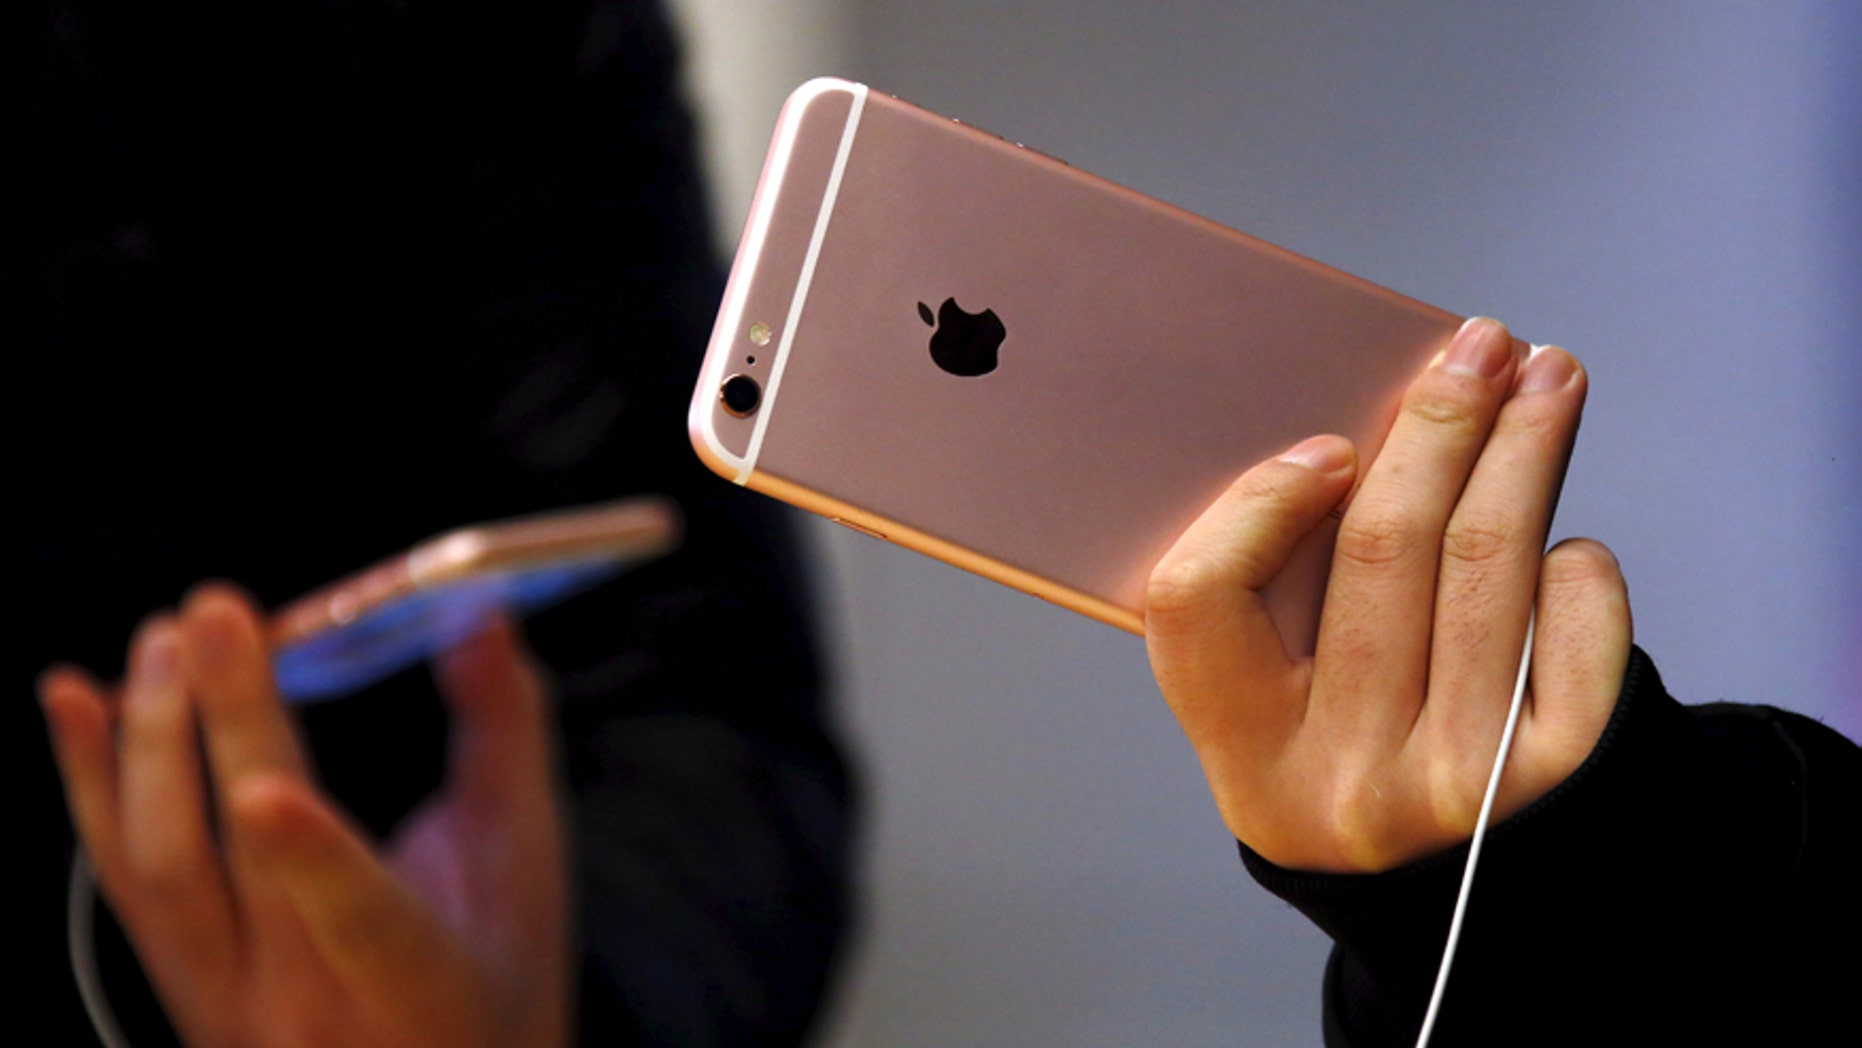 File photo - Customers hold the iPhone 6s during the official launch at the Apple store in central Sydney, Australia, September 25, 2015. (REUTERS/David Gray)